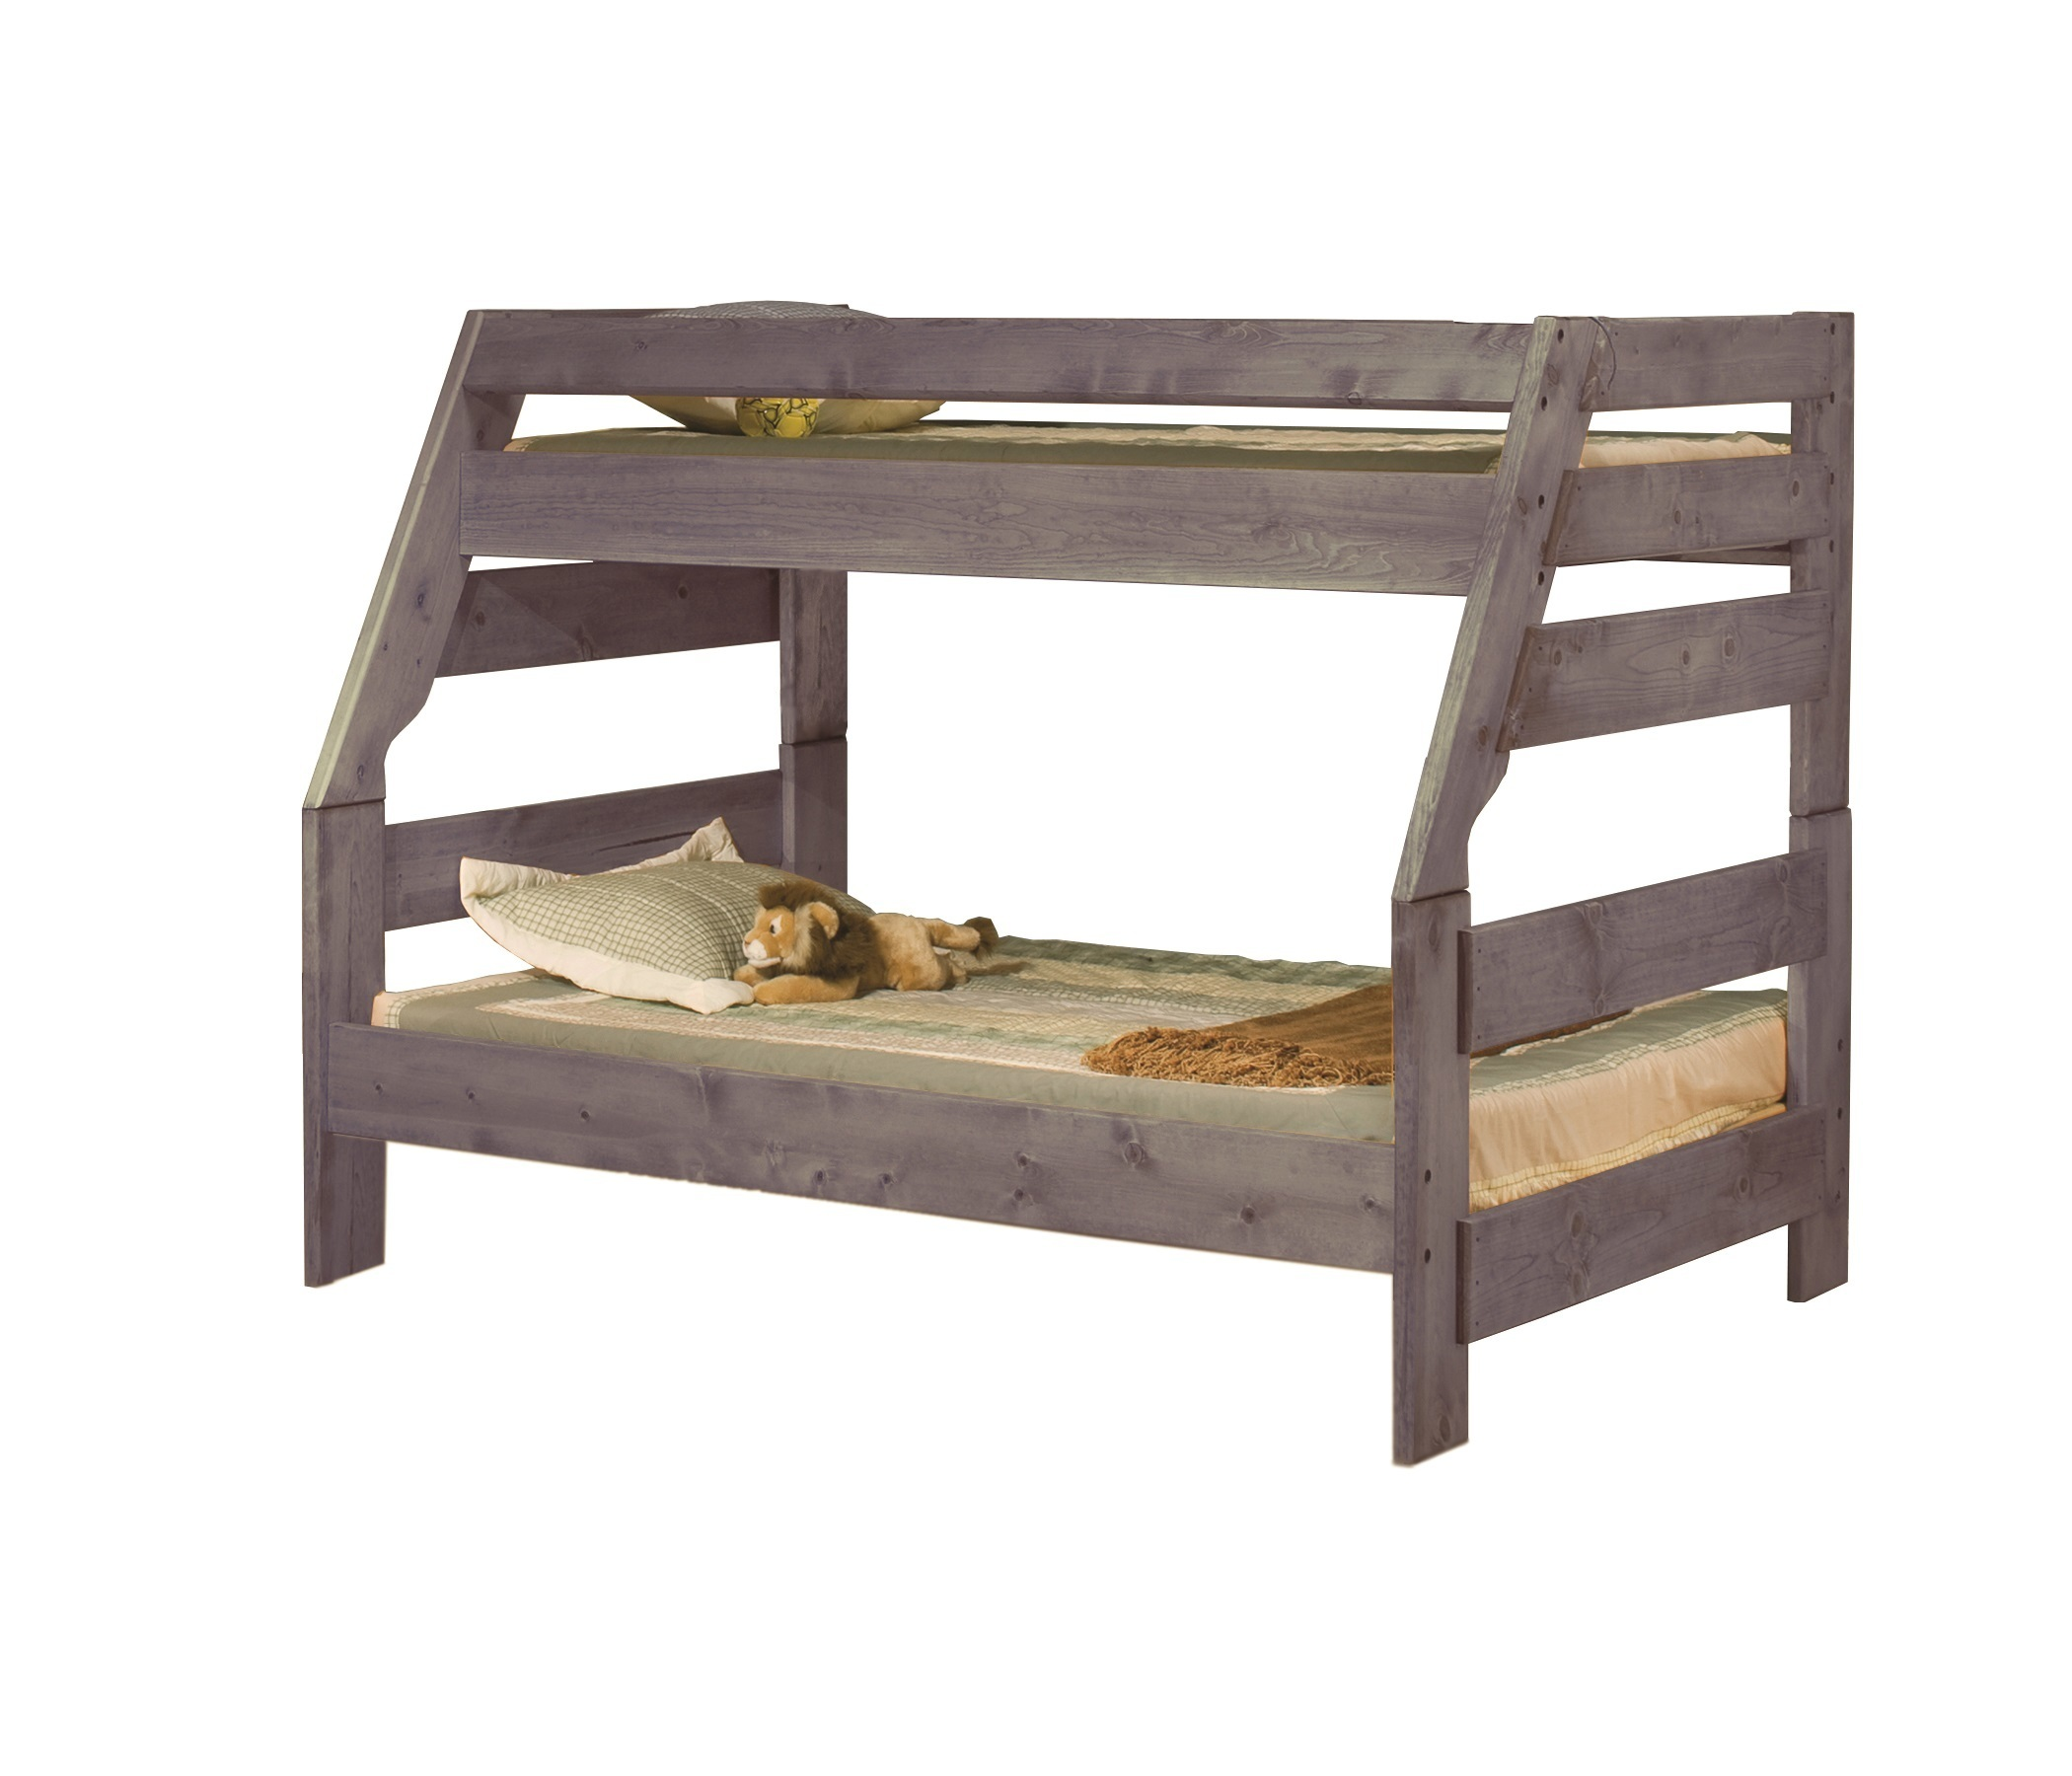 High Sierra Twin Full Bunk Bed Driftwood By Trendwood 4720 4721 4795 D Northpoint Furniture Mattress